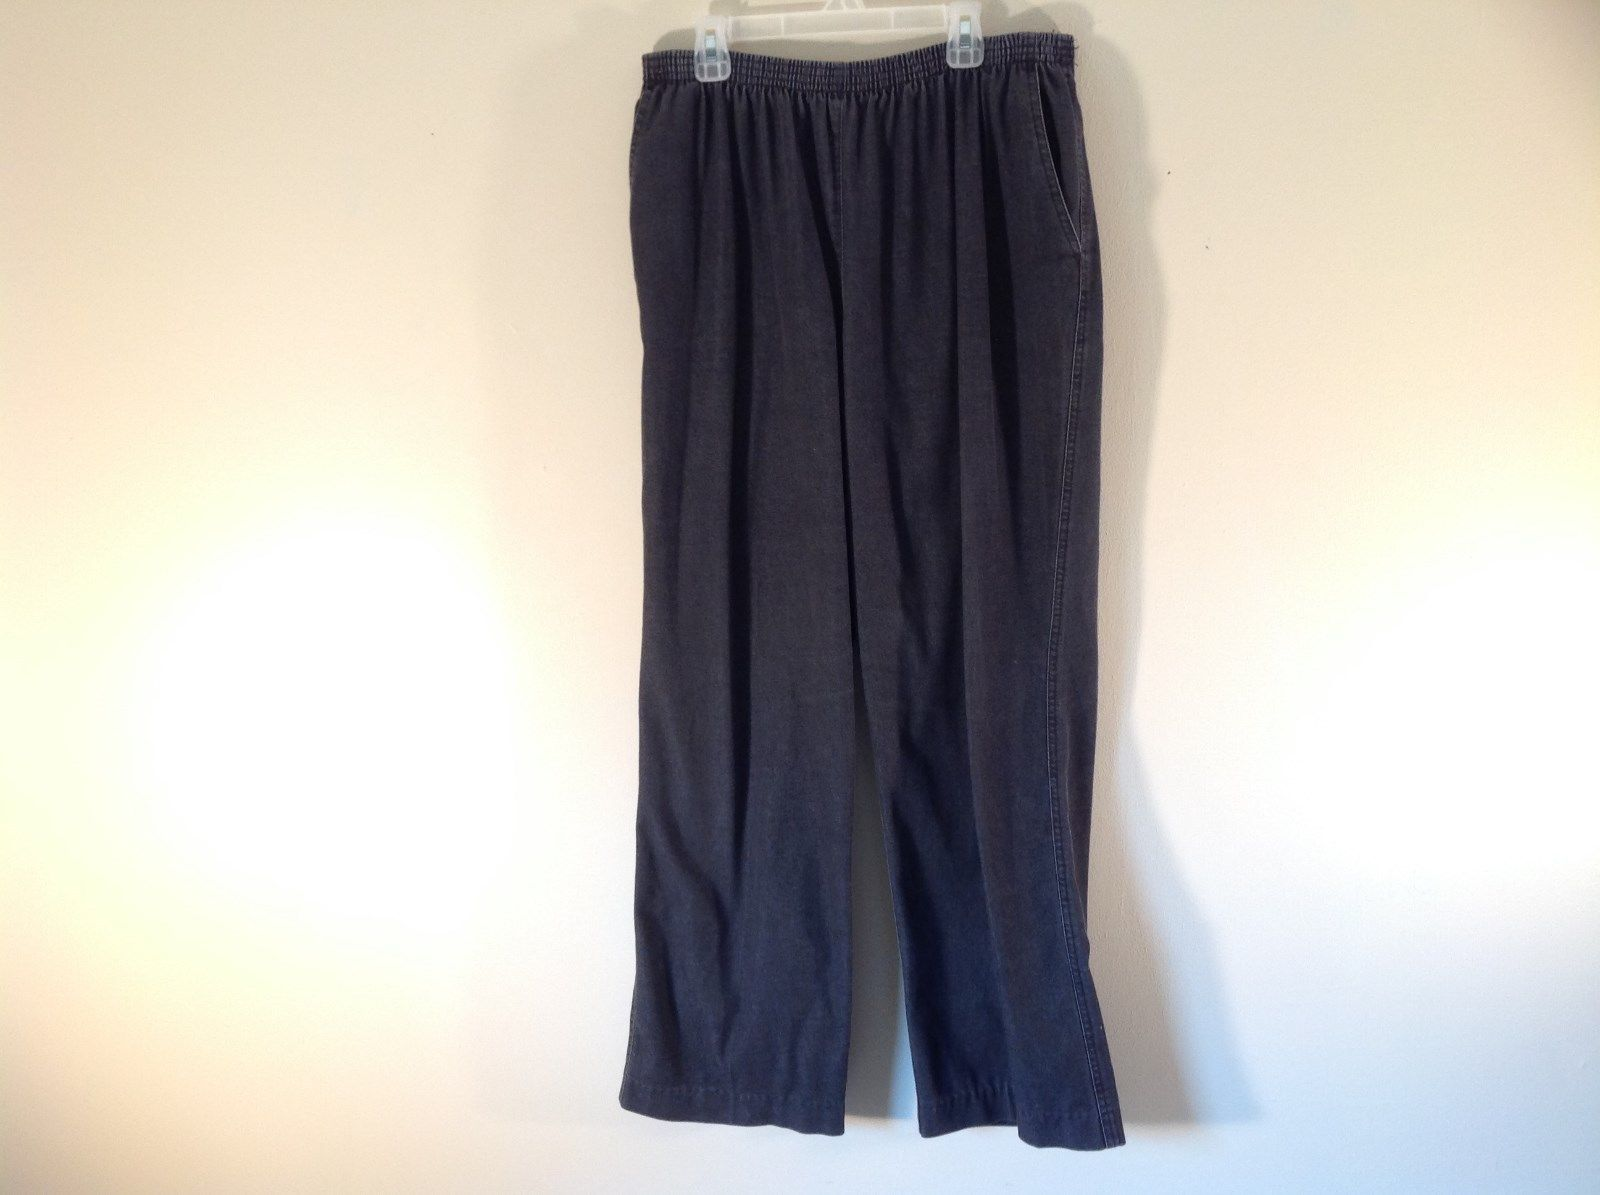 Black Charcoal Elastic Waist Alfred Dunner Casual Pants Size 16 Cotton Blend